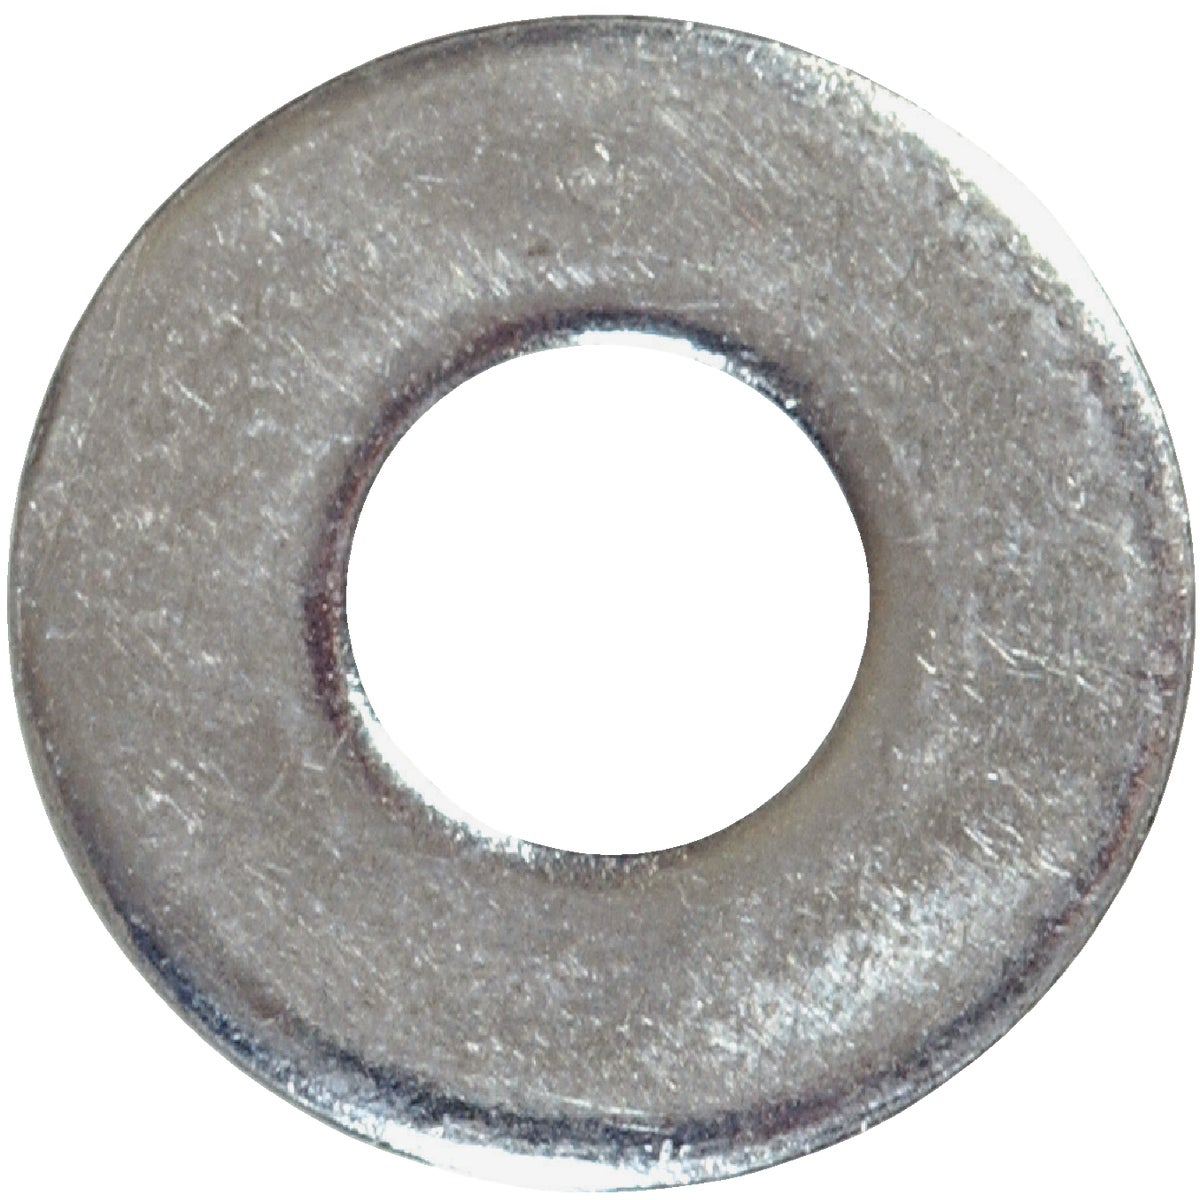 "5LB 1/4"" USS FLT WASHER - 270006 by Hillman Fastener"